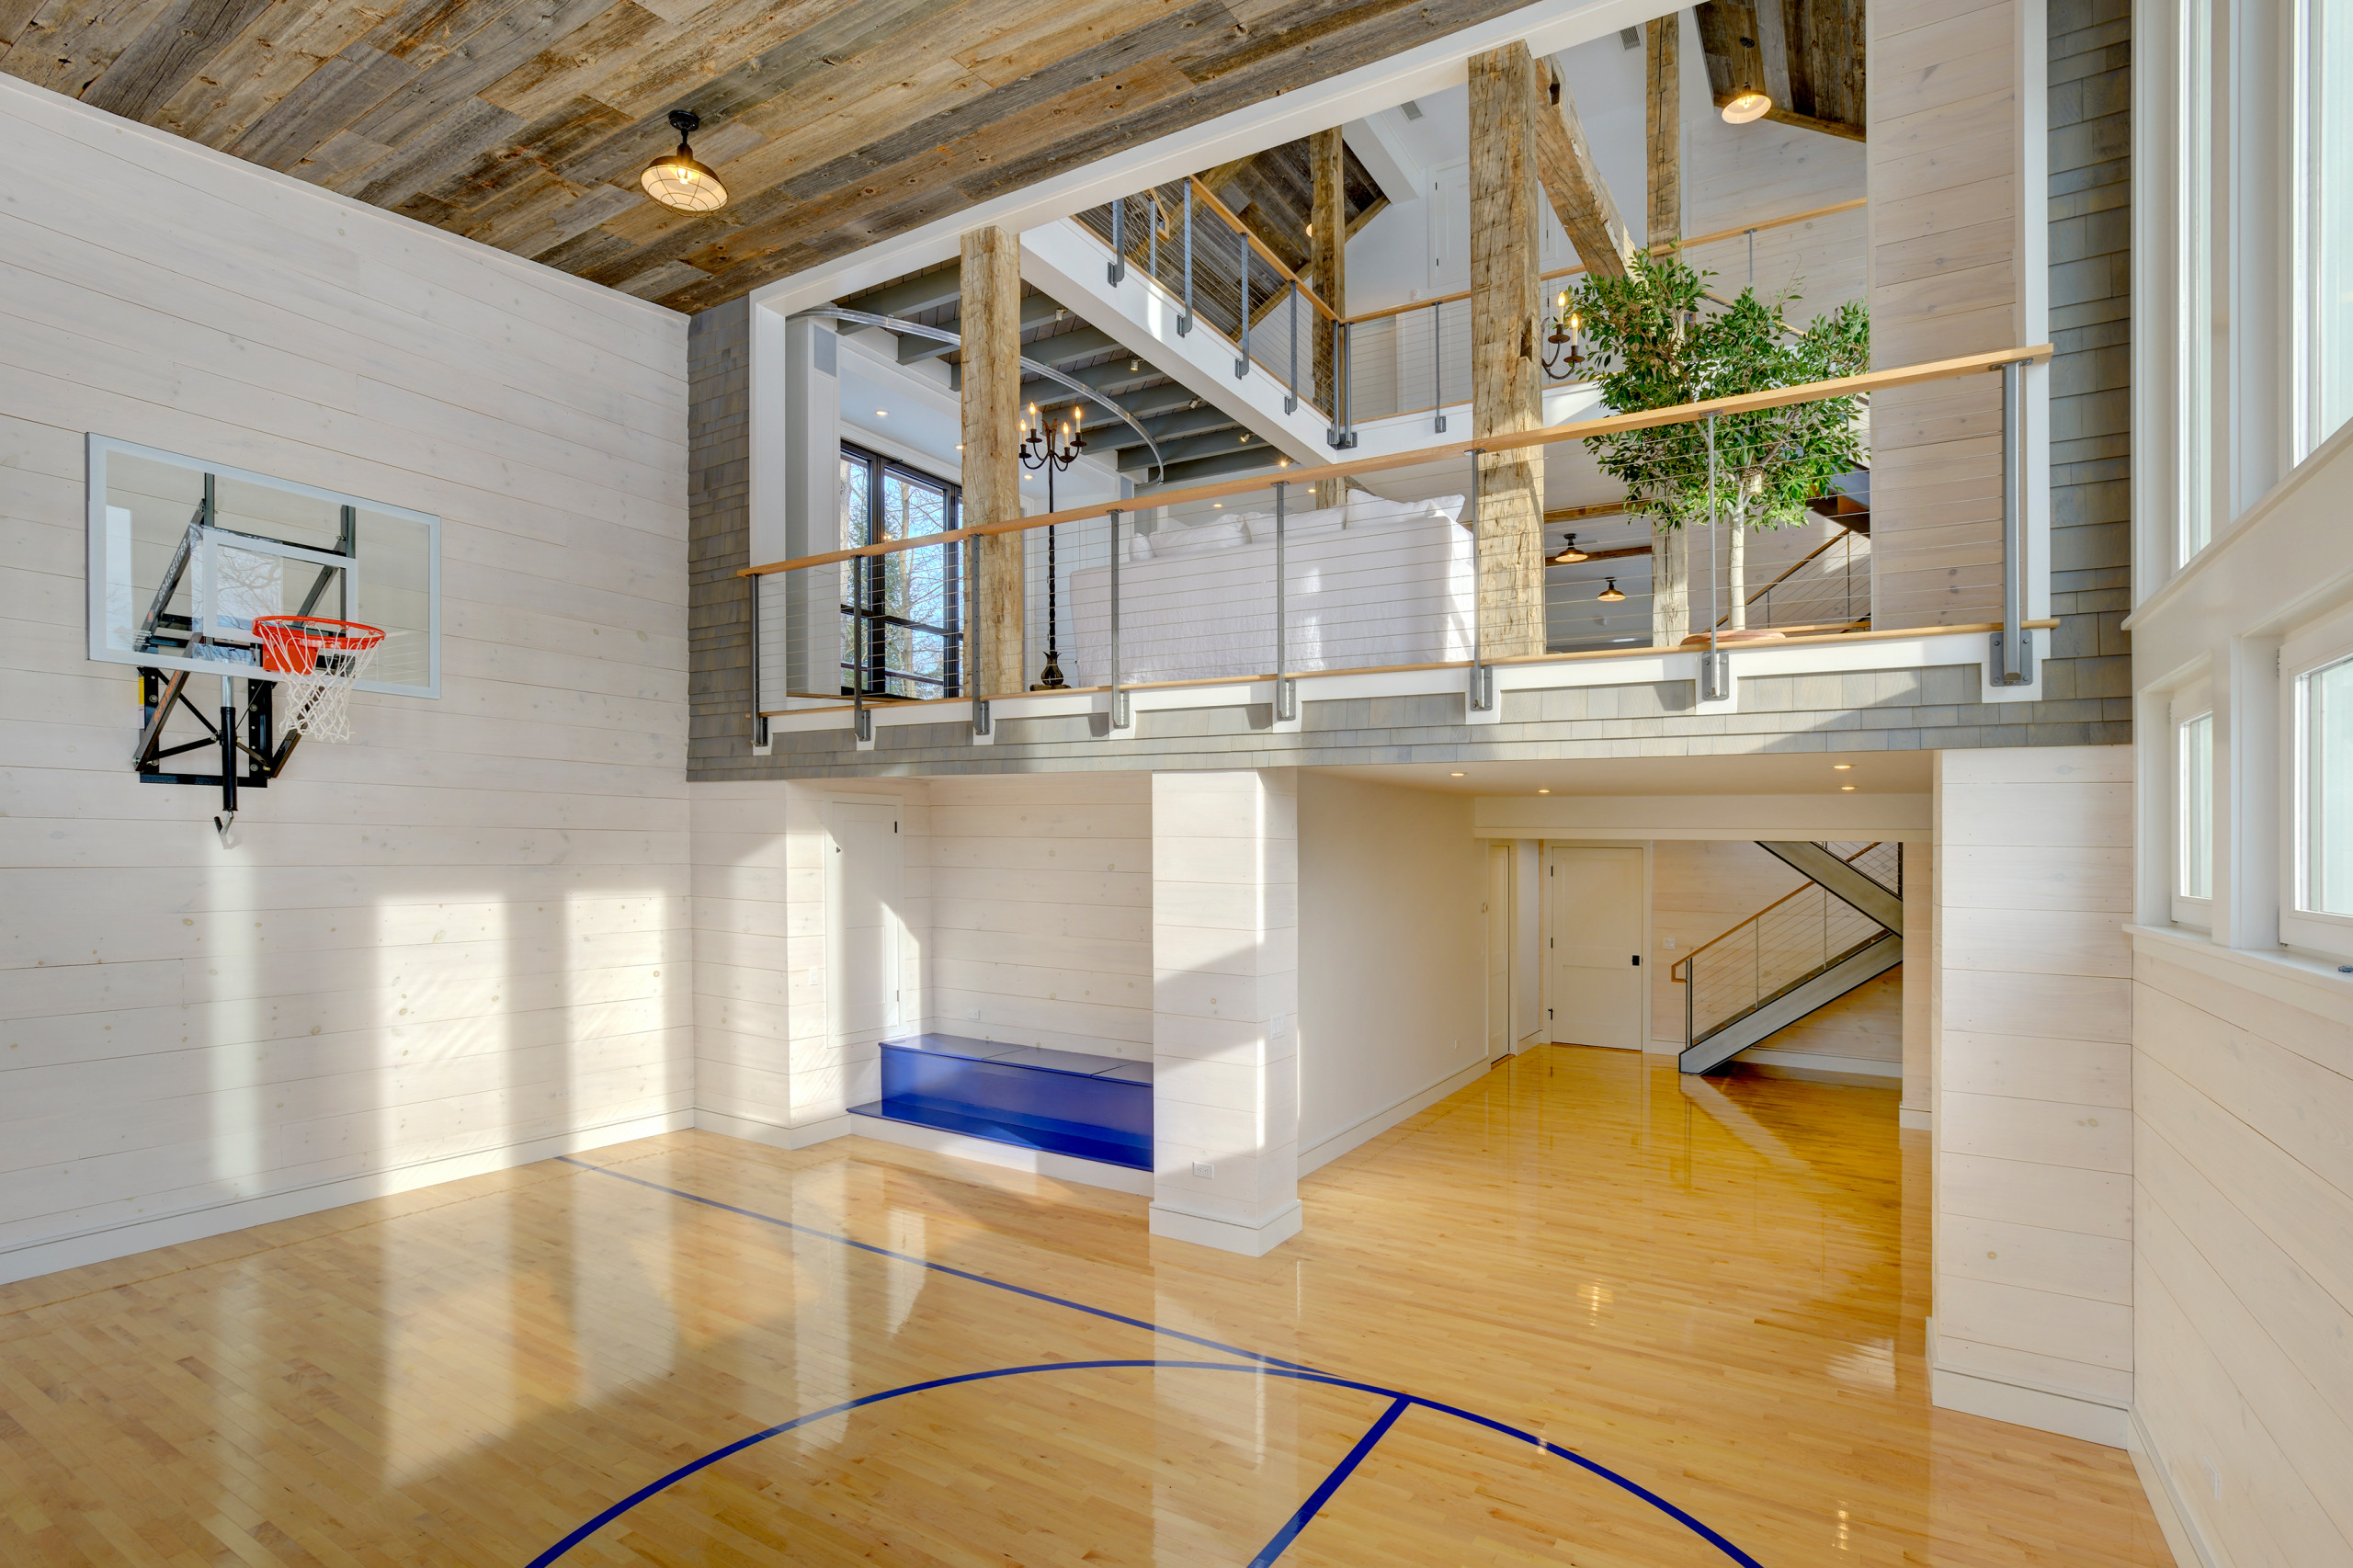 75 Beautiful Farmhouse Indoor Sport Court Pictures Ideas March 2021 Houzz